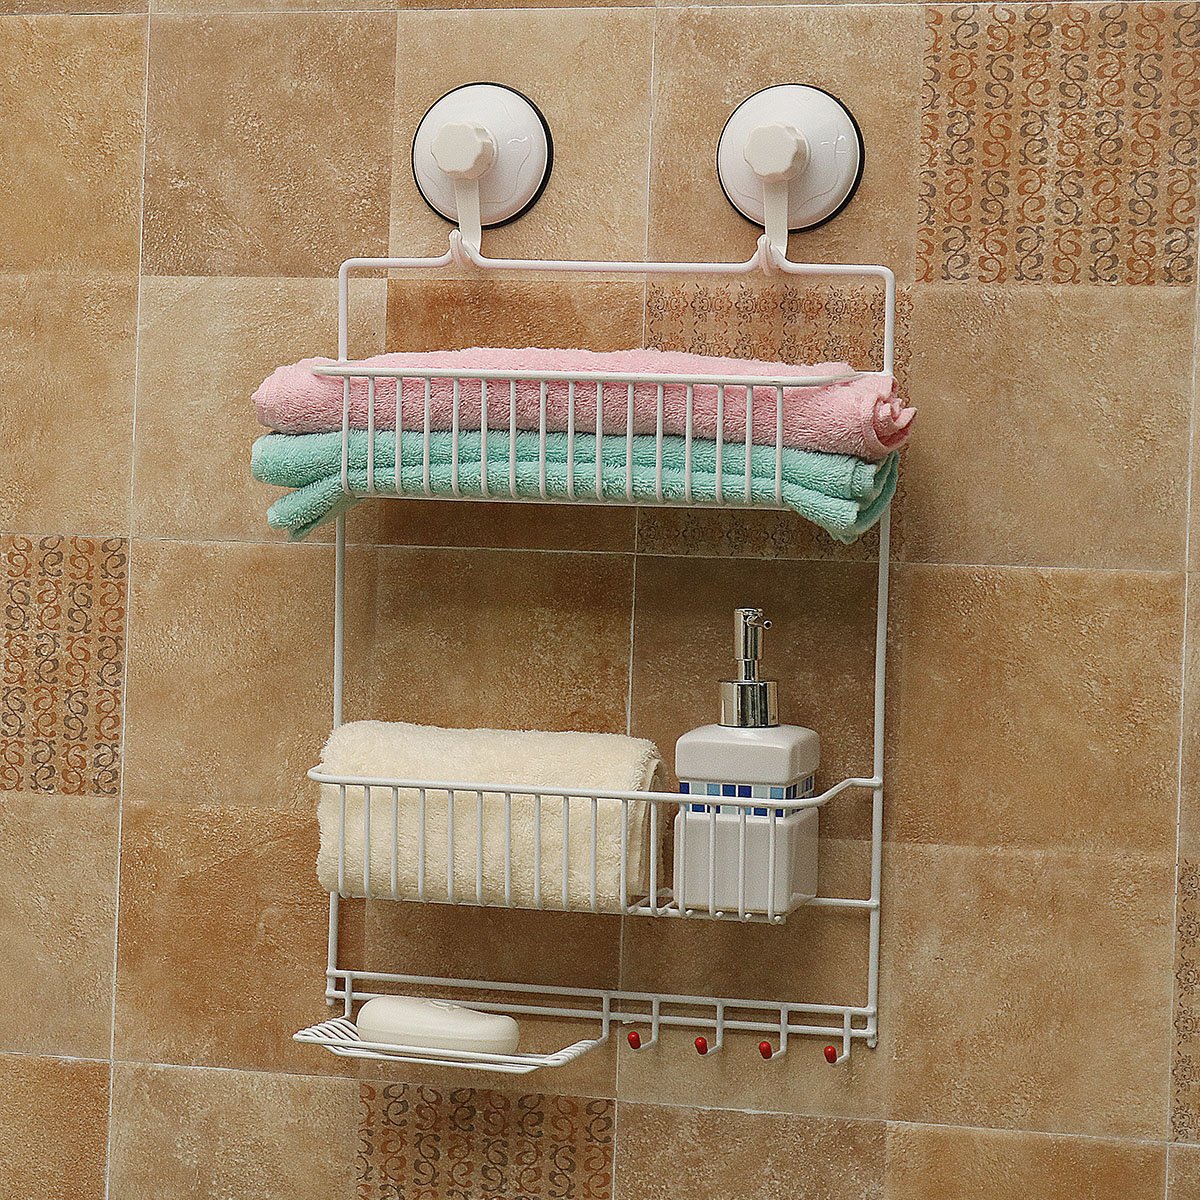 white 2 tier wall shelf concise bathroom wall mounted storage rack with hooks. Black Bedroom Furniture Sets. Home Design Ideas